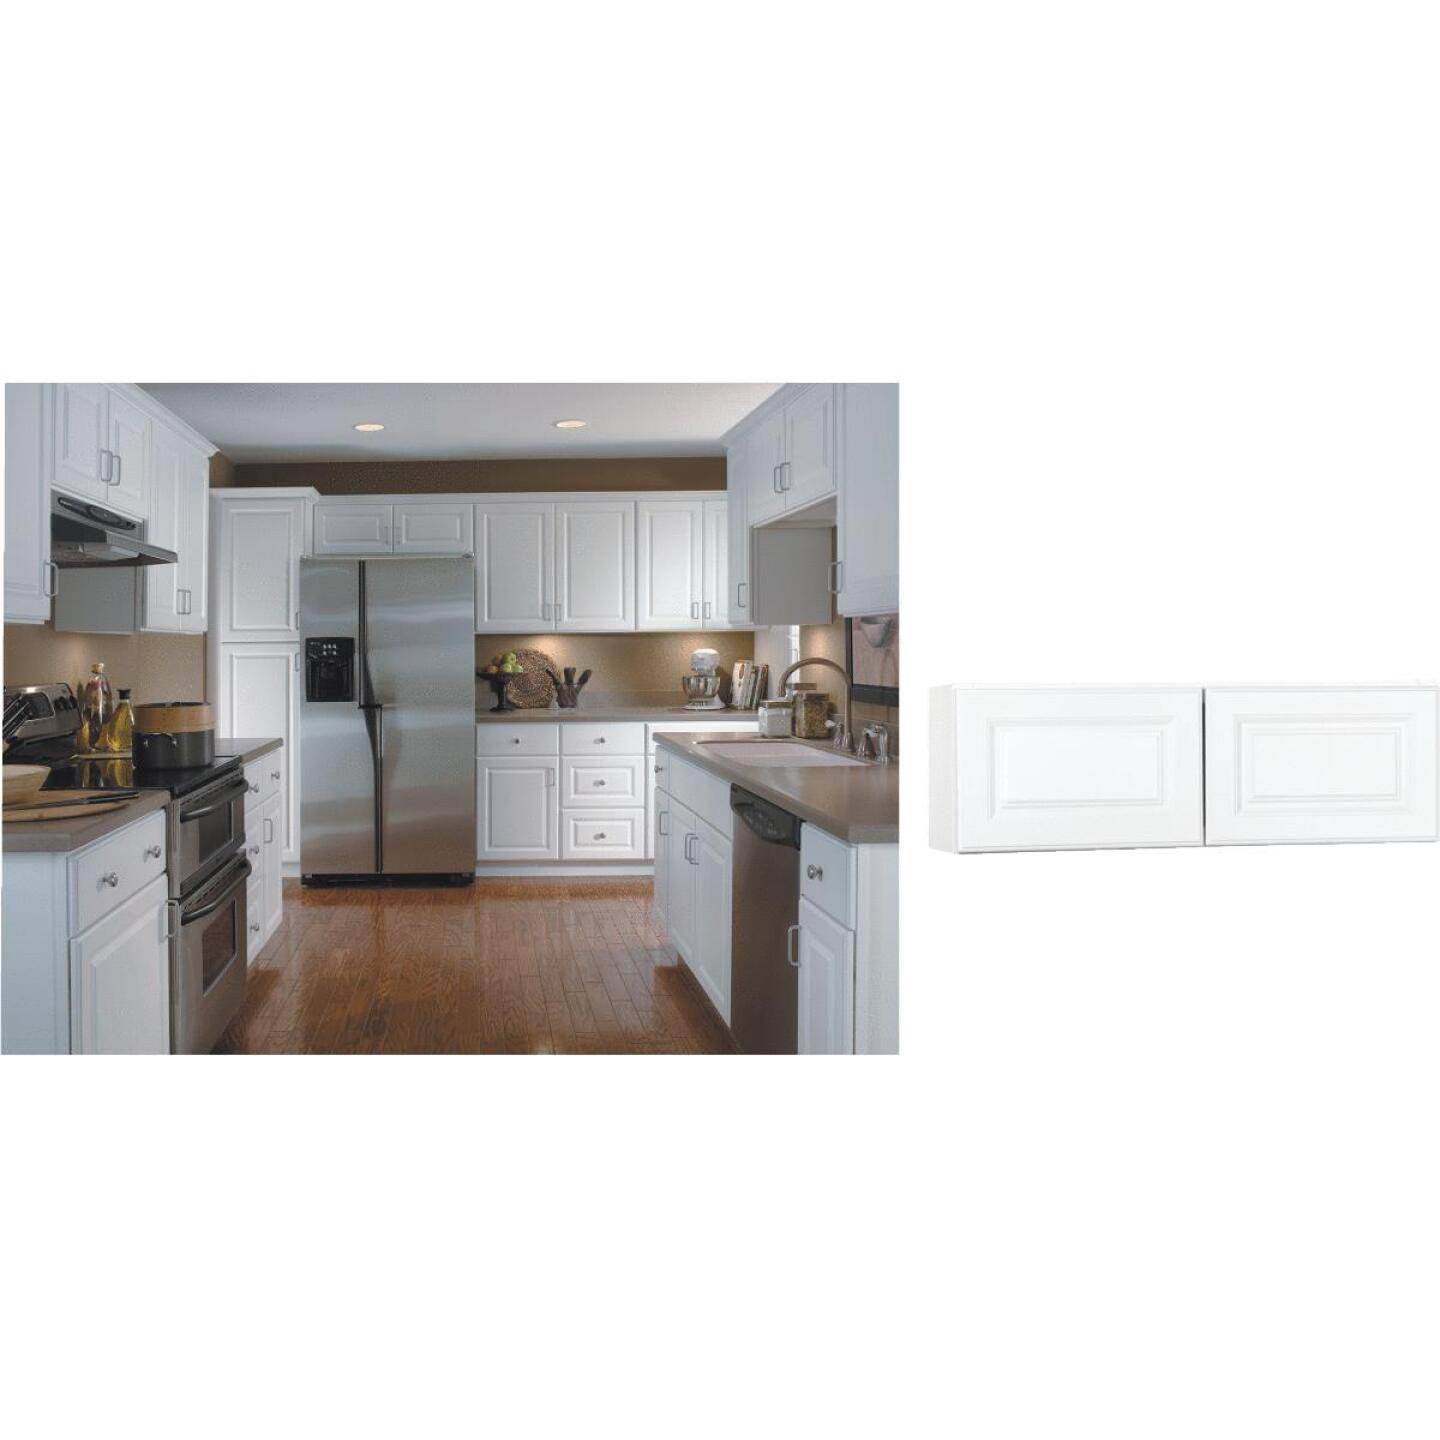 Continental Cabinets Hamilton 36 In. W x 12 In. H x 12 In. D Satin White Maple Bridge Wall Kitchen Cabinet Image 1